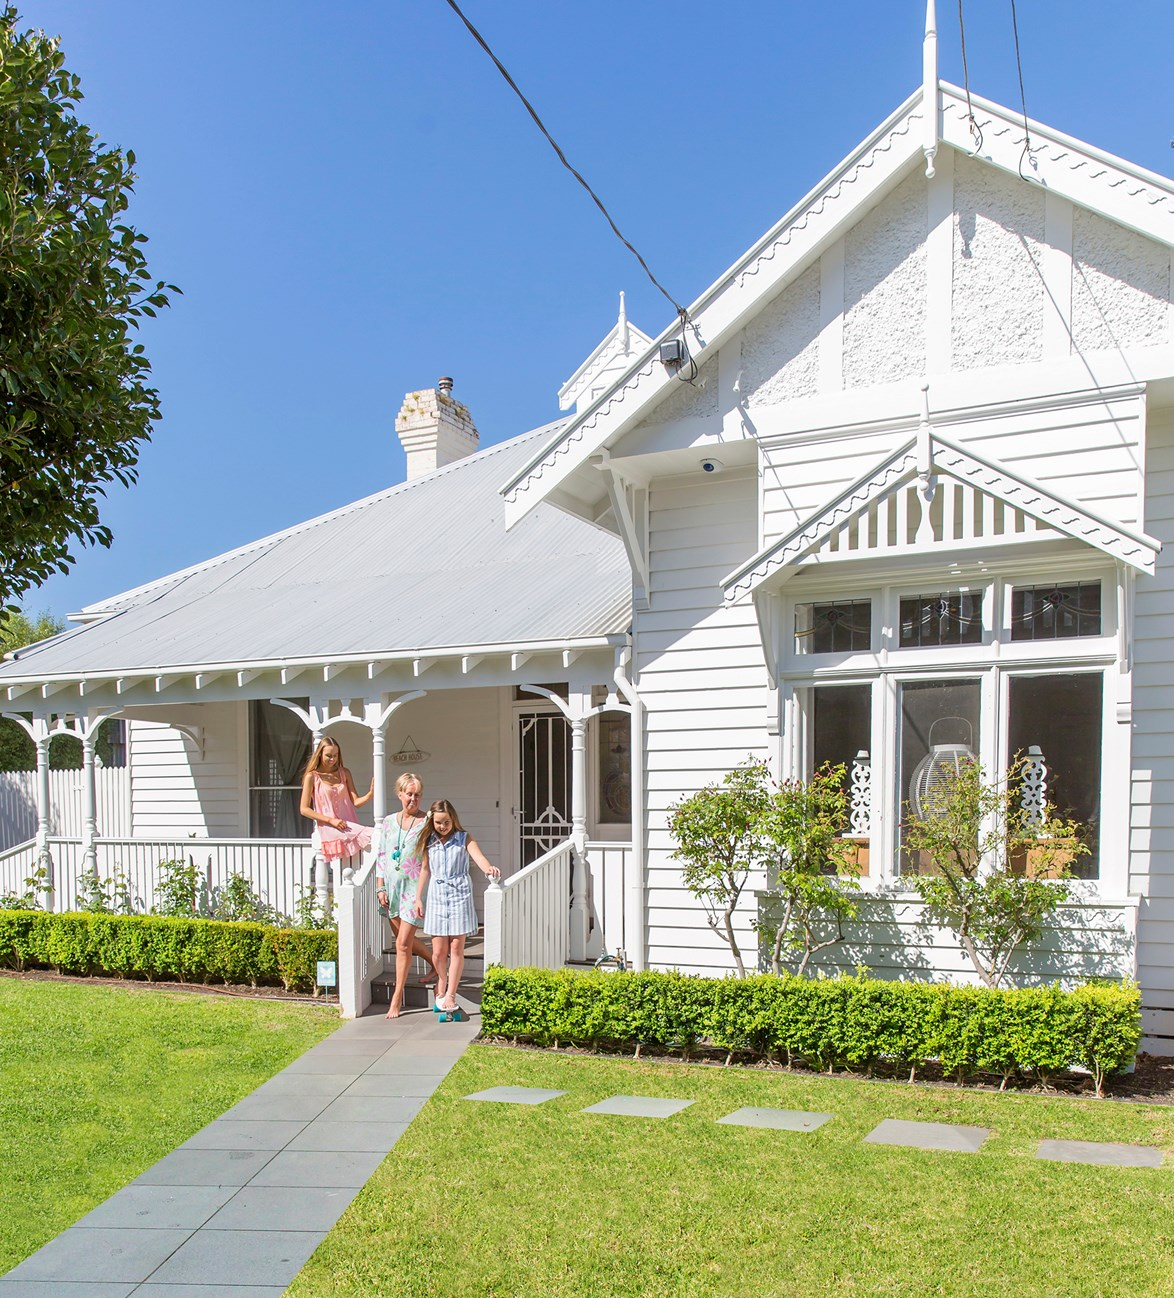 The street appeal of this triple-fronted weatherboard in Melbourne proved impossible for the current owners to resist. See more of this [Hamptons-coastal cottage](http://www.homestolove.com.au/a-renovated-hamptons-coastal-cottage-in-melbourne-4813). *Photography: Katherine Jamison | Story: homes+*